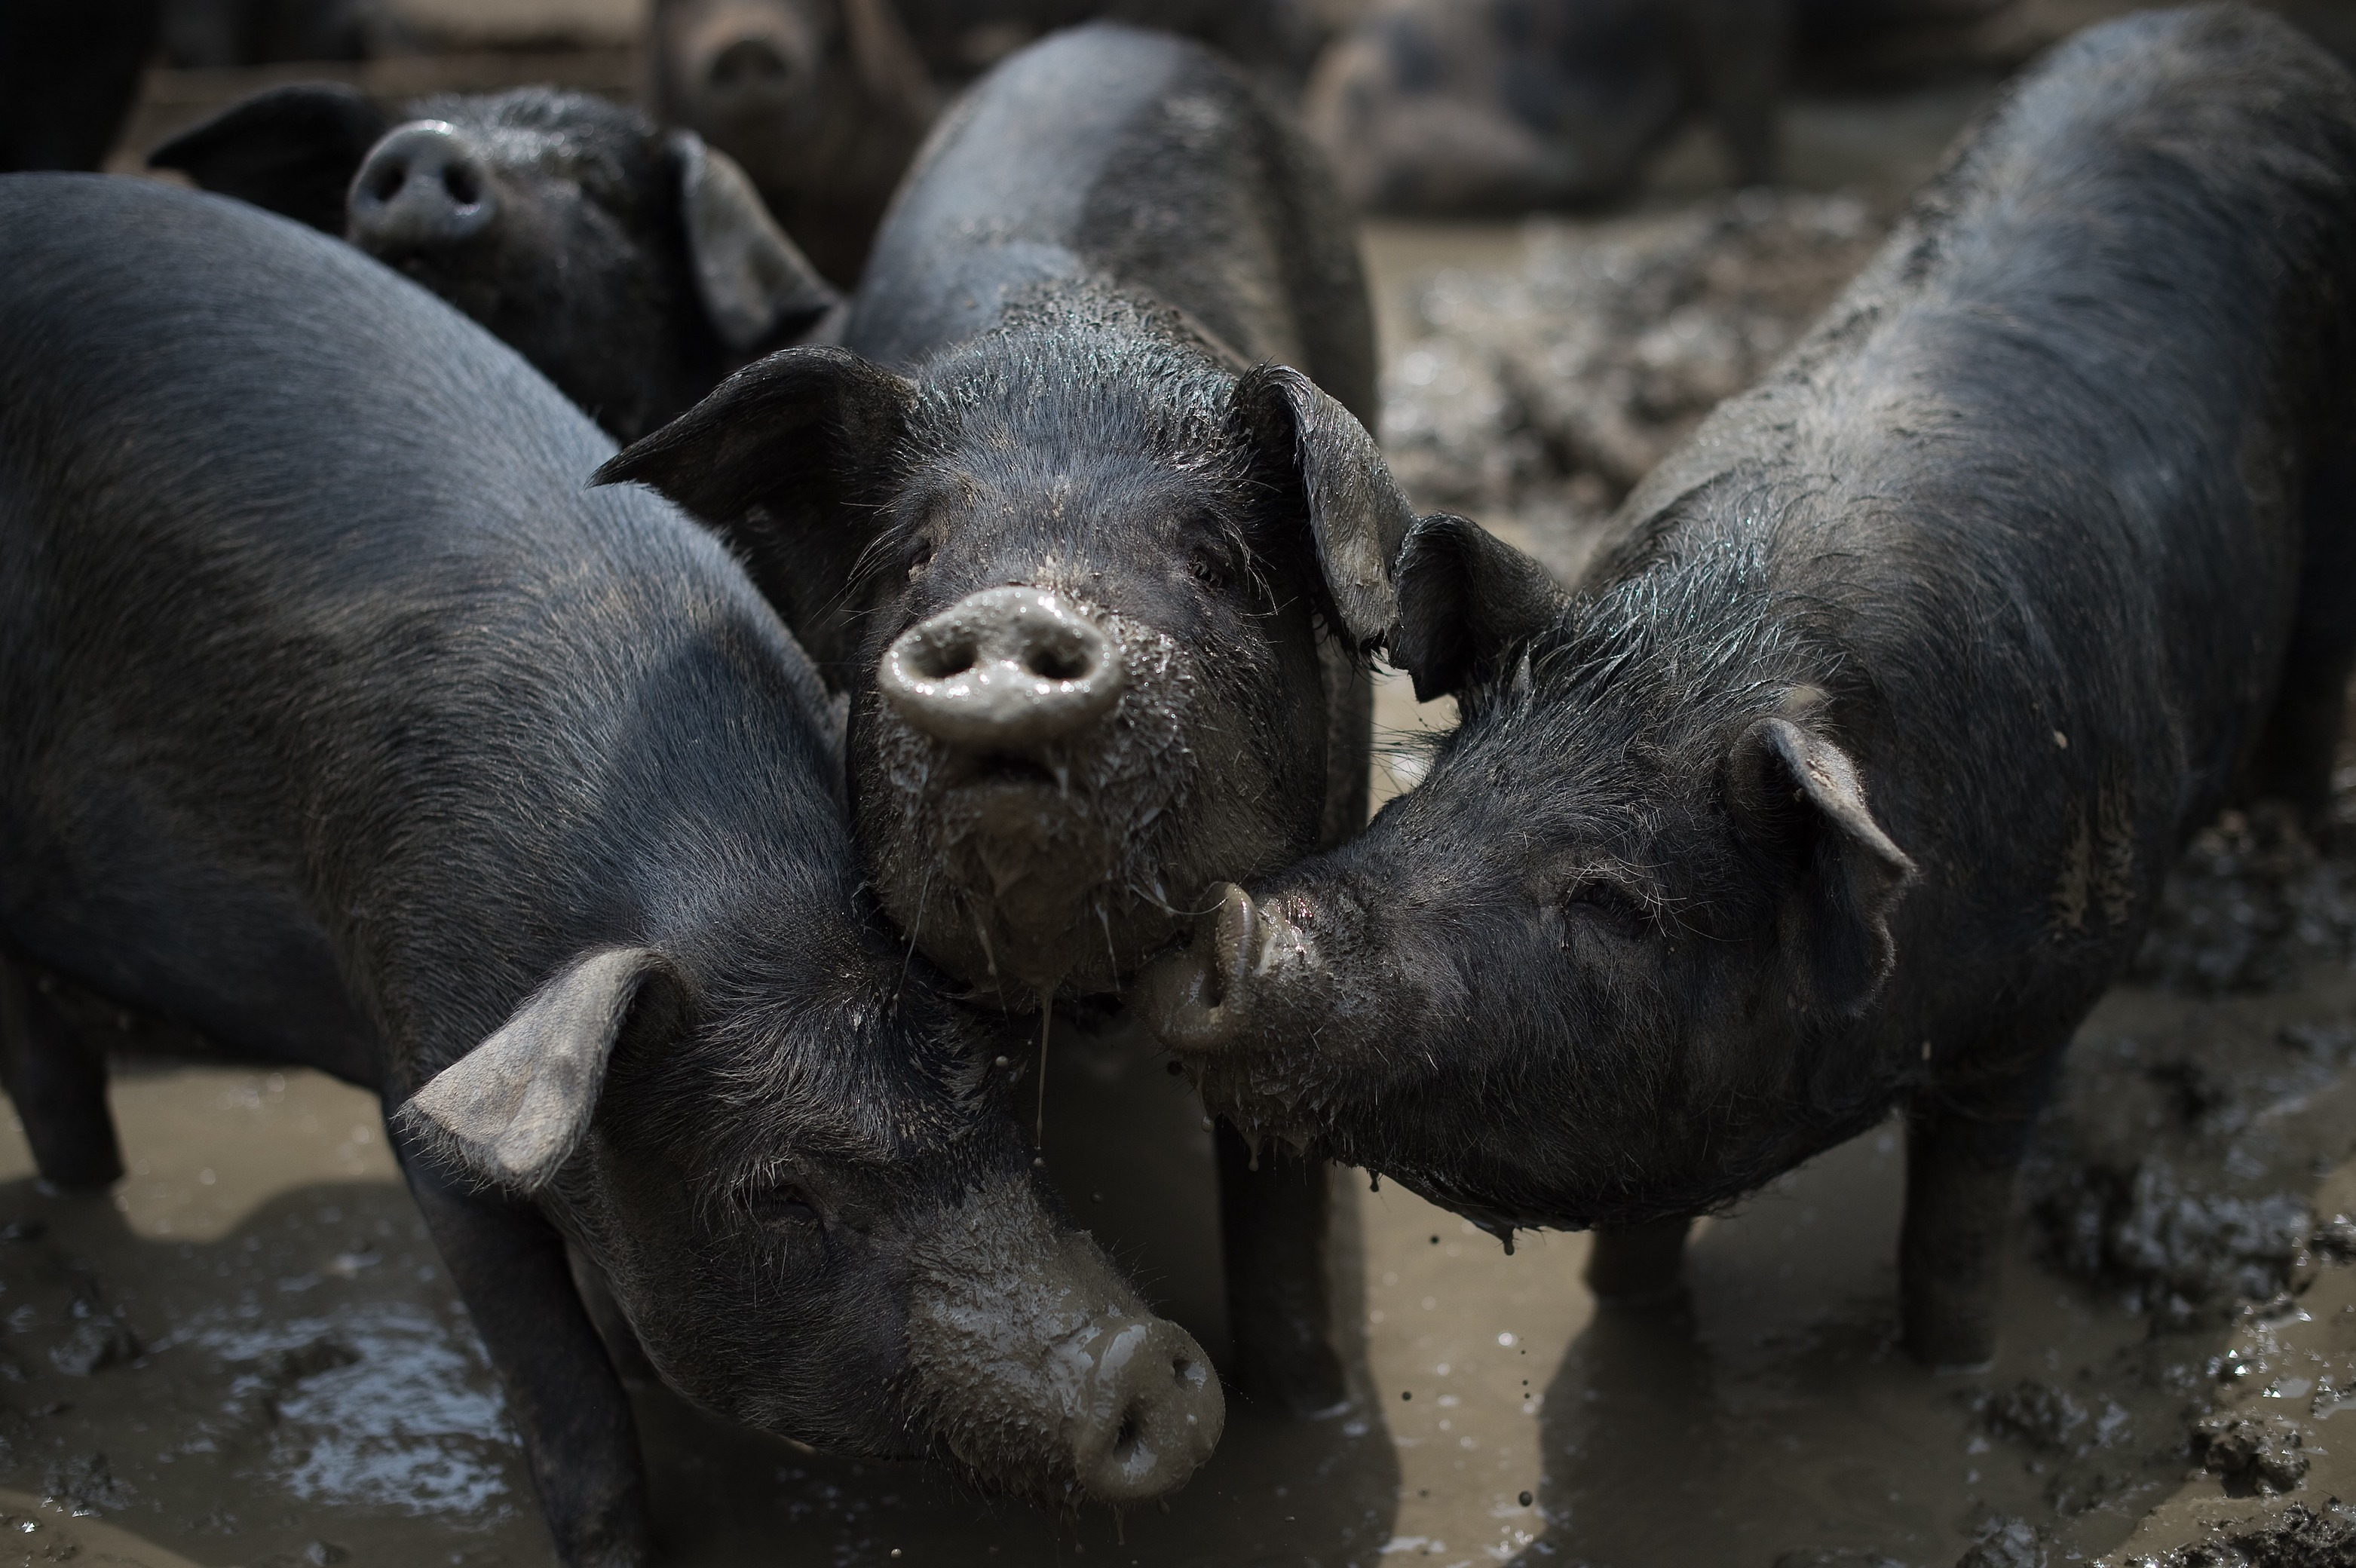 China 'backyard' pig farmers squeezed as sector scales up | Asia Times